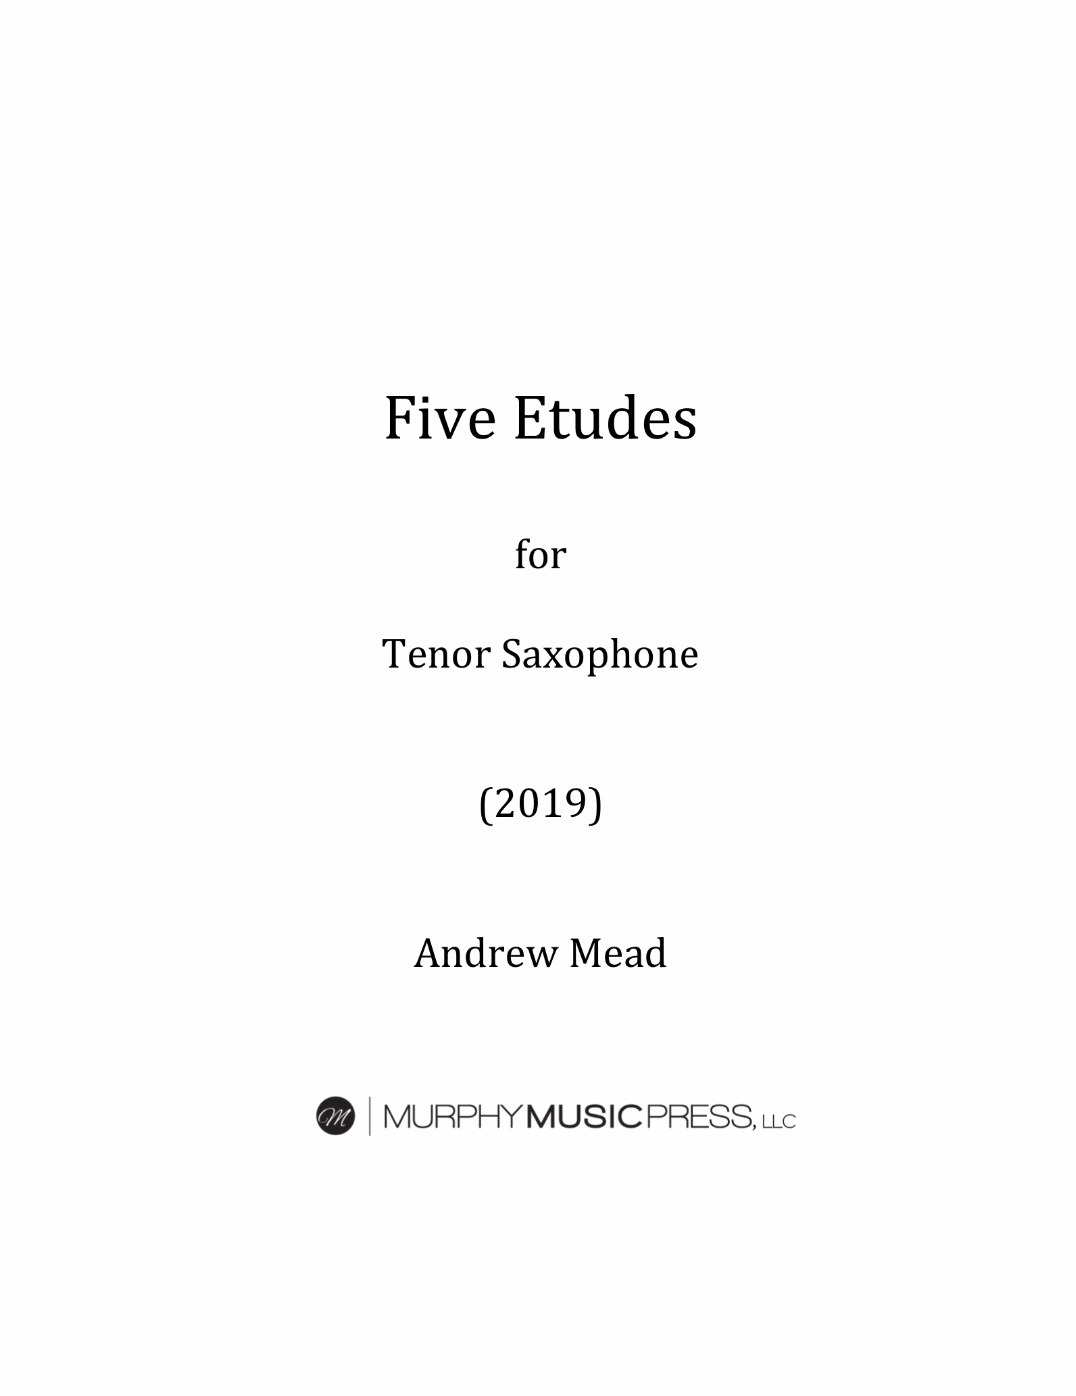 Five Concert Etudes For Tenor Saxophone by Andrew Mead